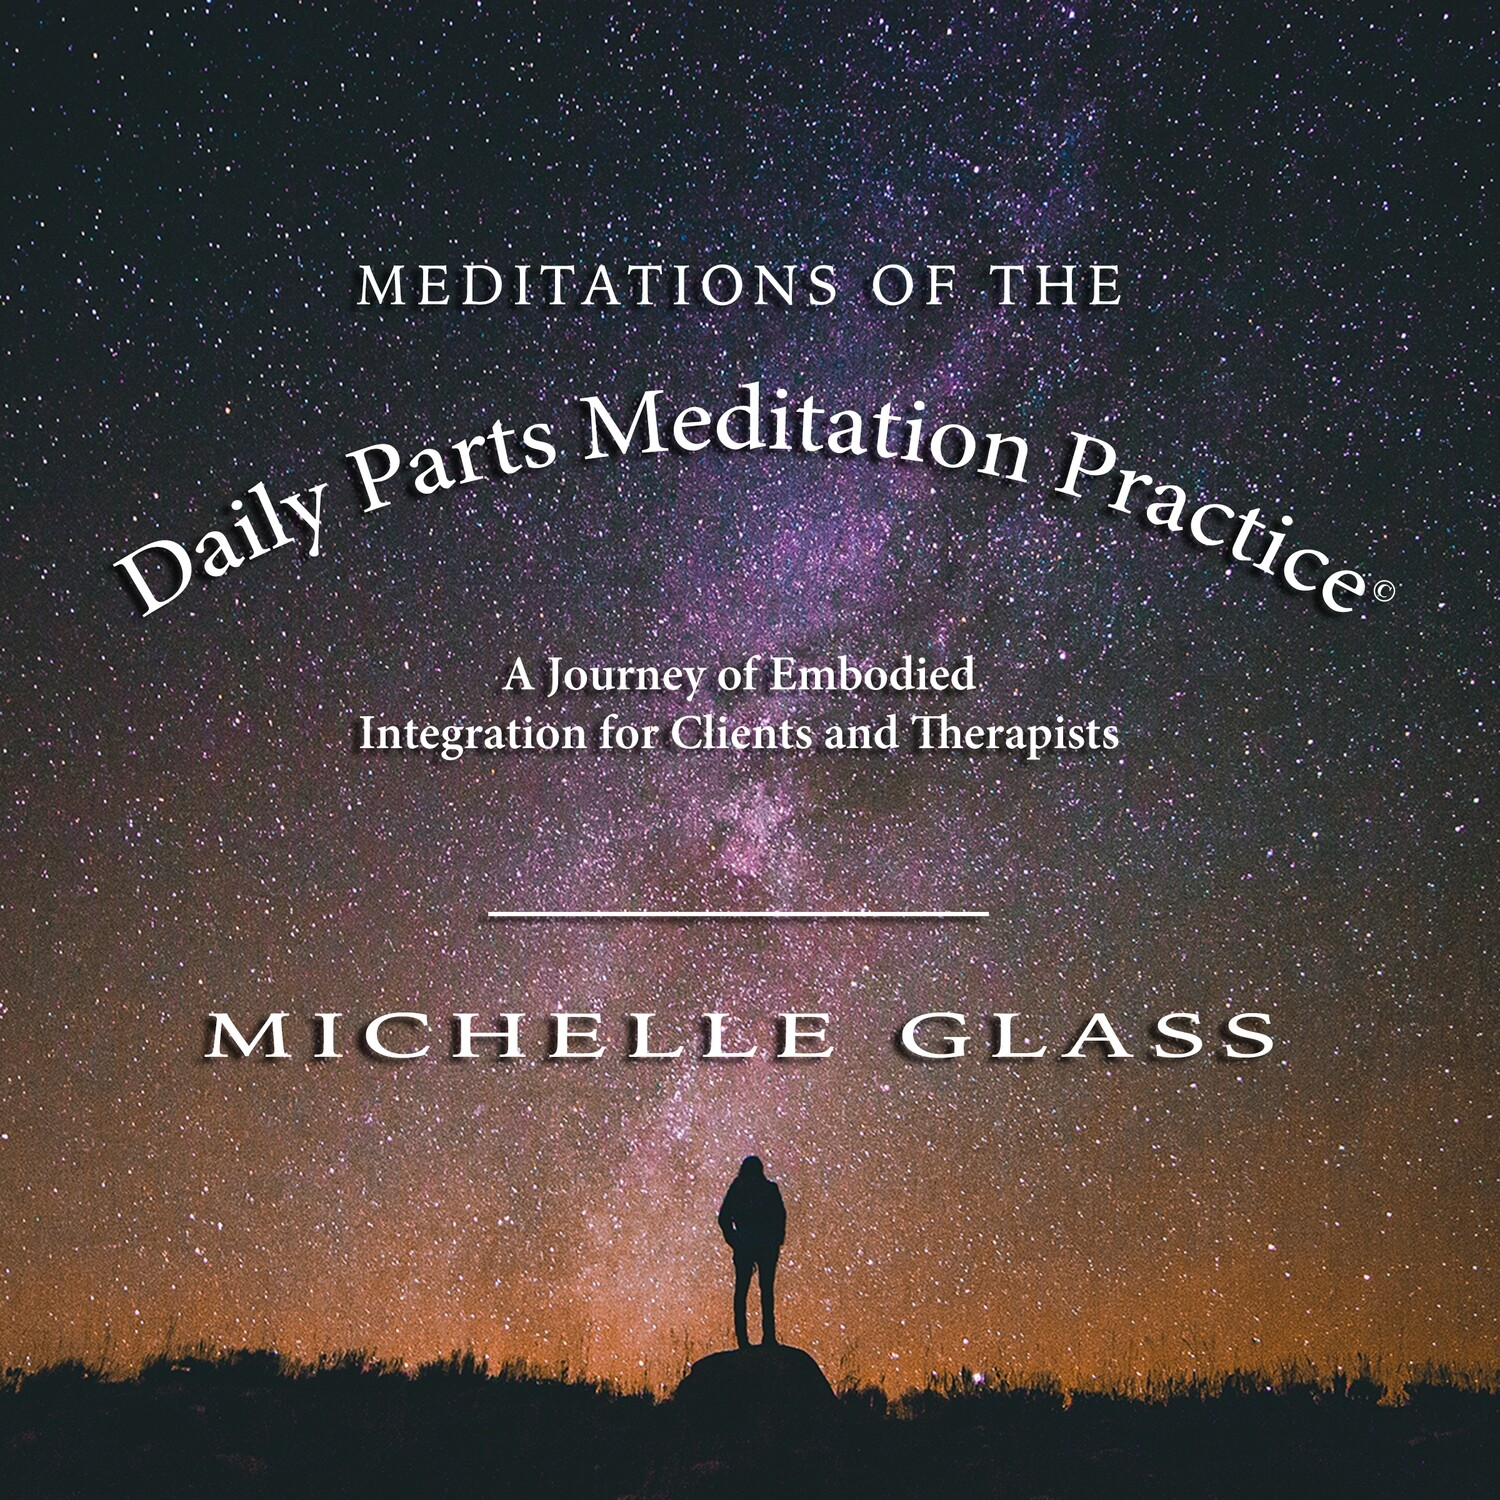 MP3 Download - Meditations of the DPMP